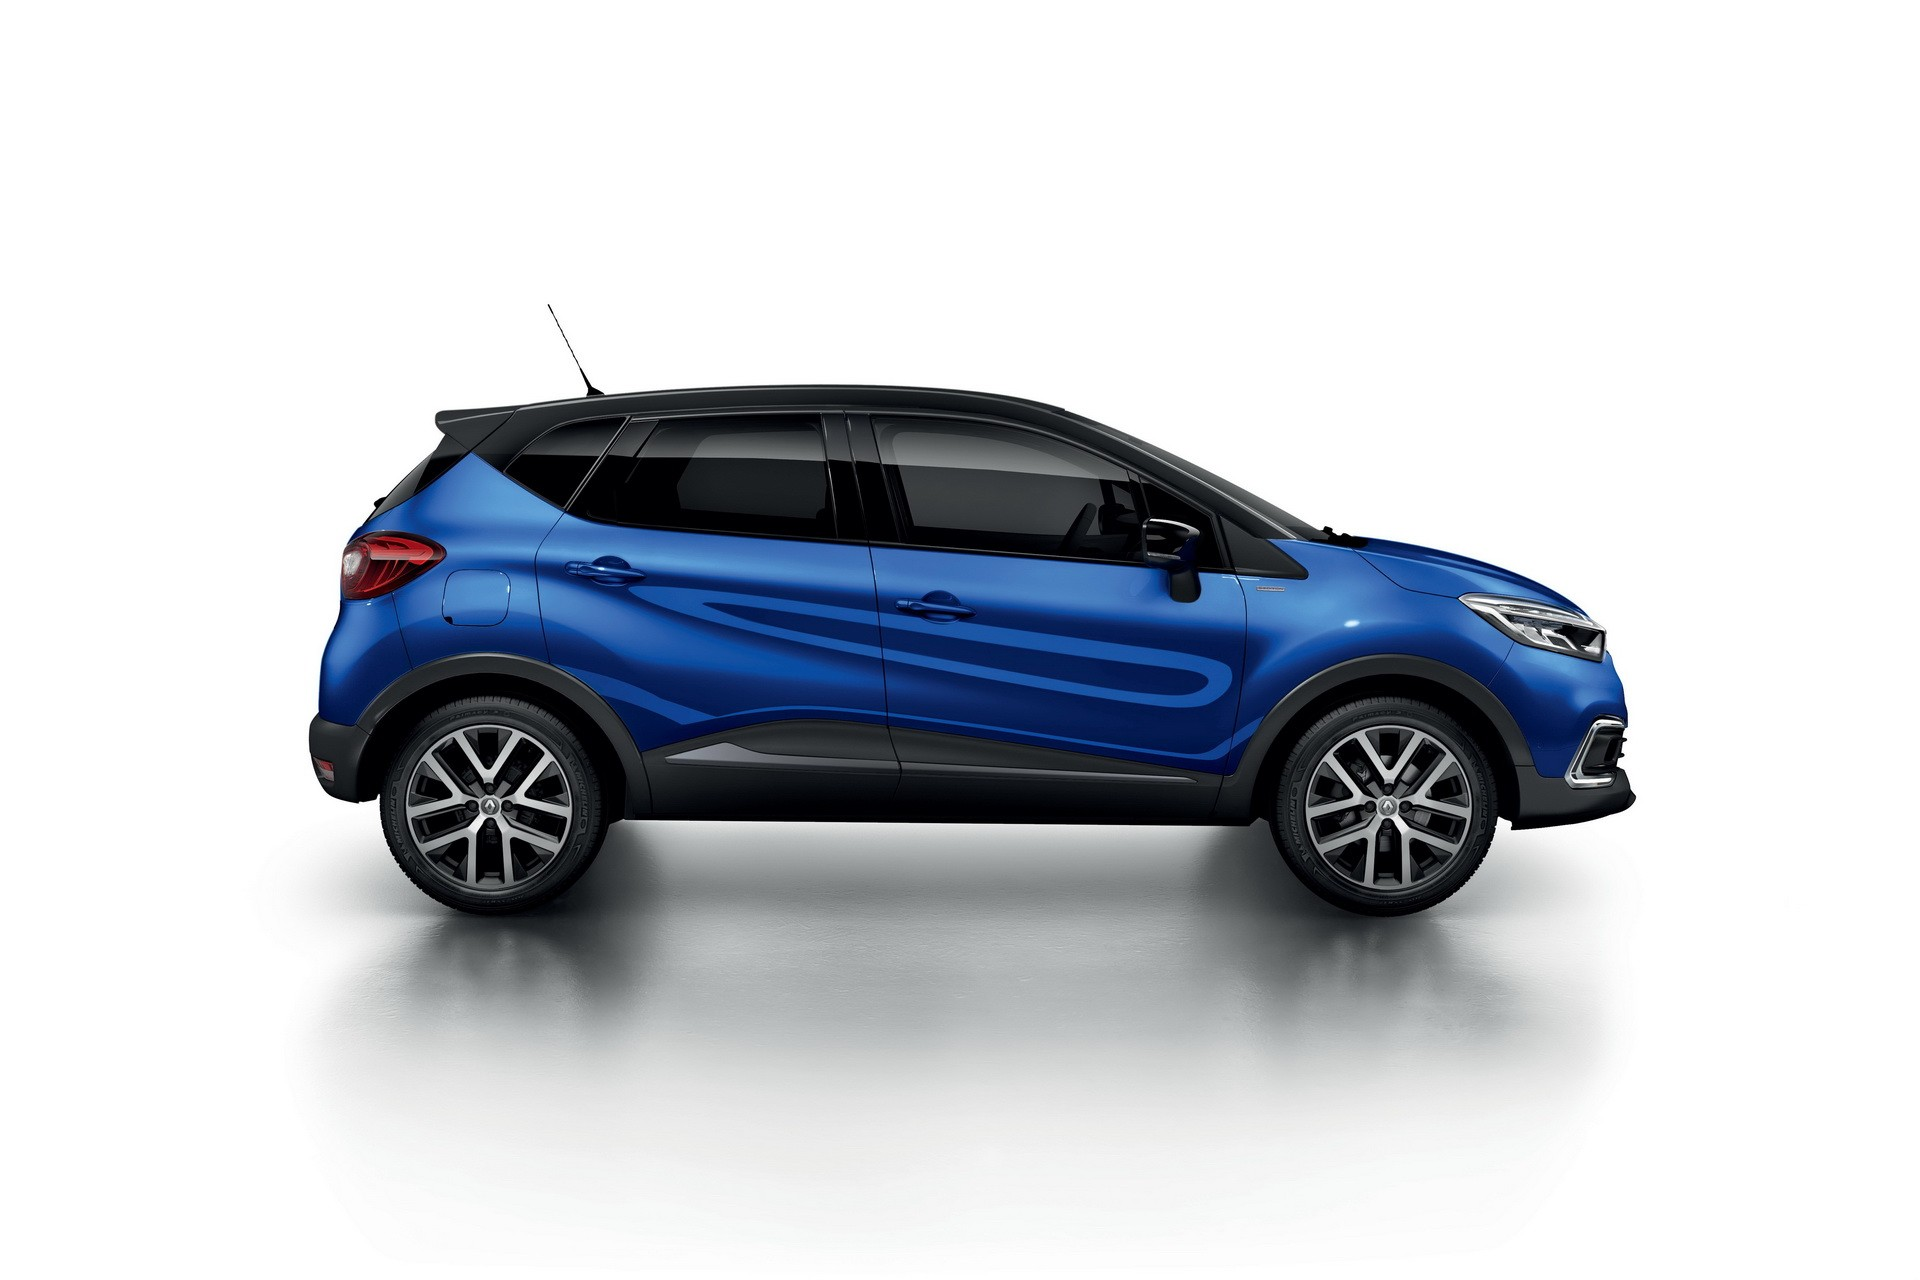 renault captur s edition gets 150 hp from new turbo engine autoevolution. Black Bedroom Furniture Sets. Home Design Ideas